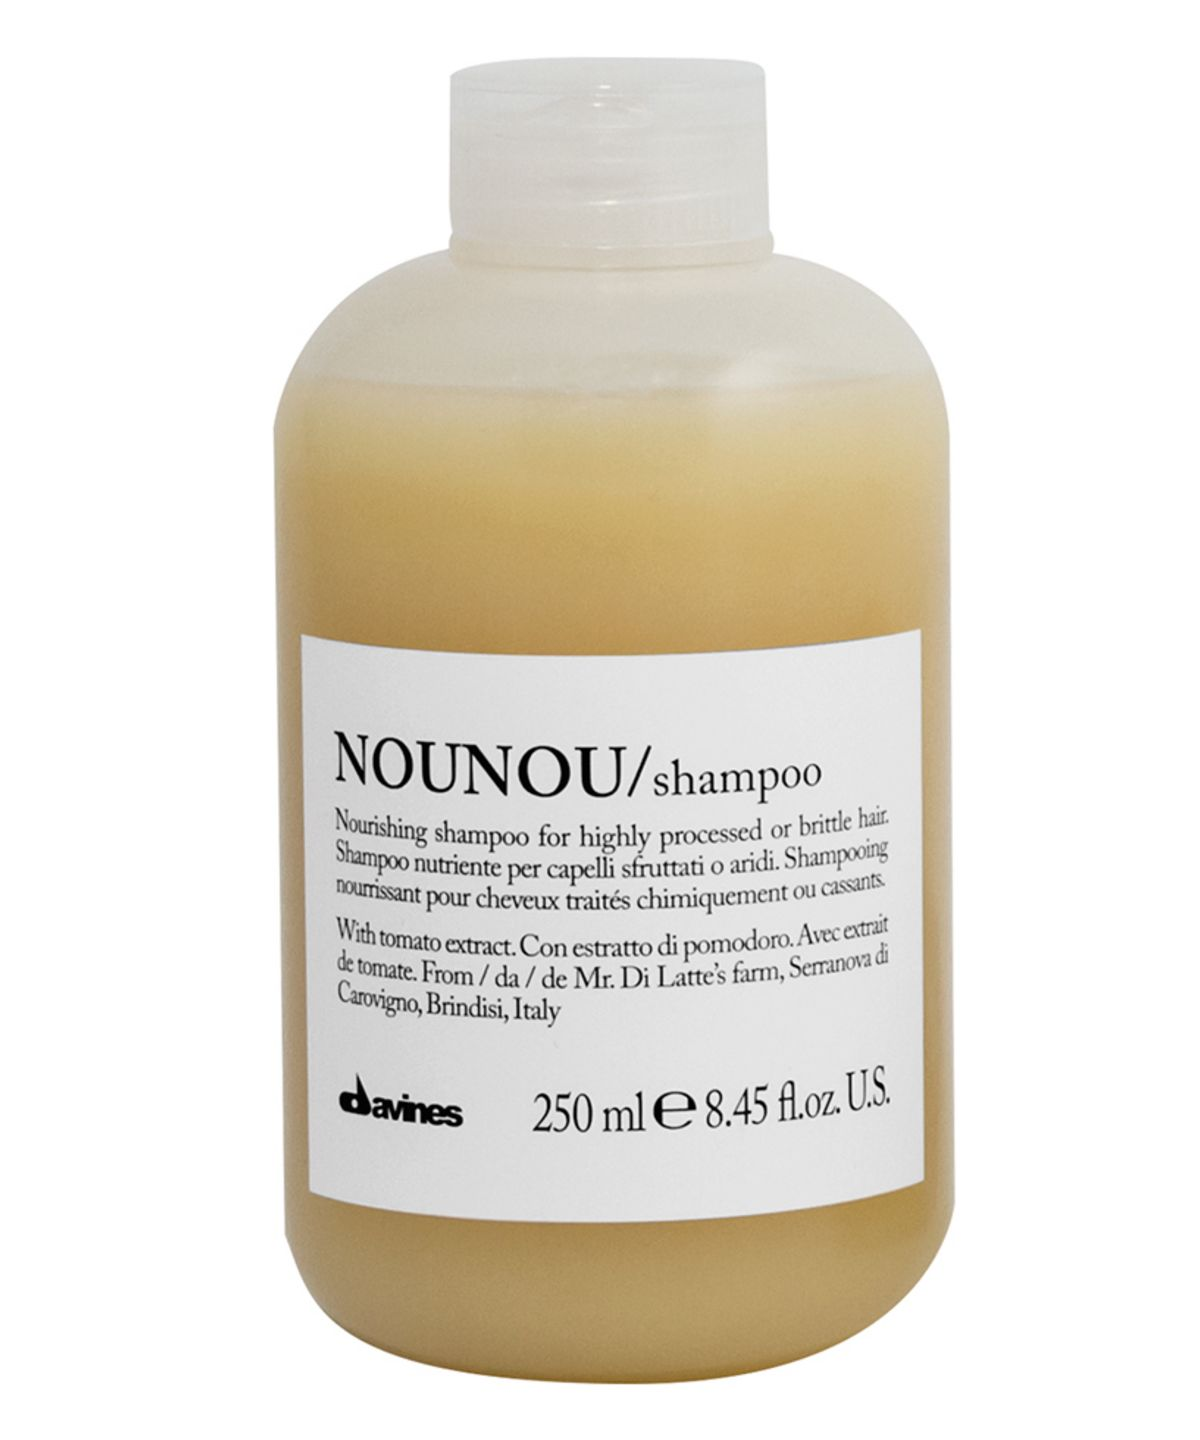 nounou nourishing shampoo for colour treated hair by davines. Black Bedroom Furniture Sets. Home Design Ideas